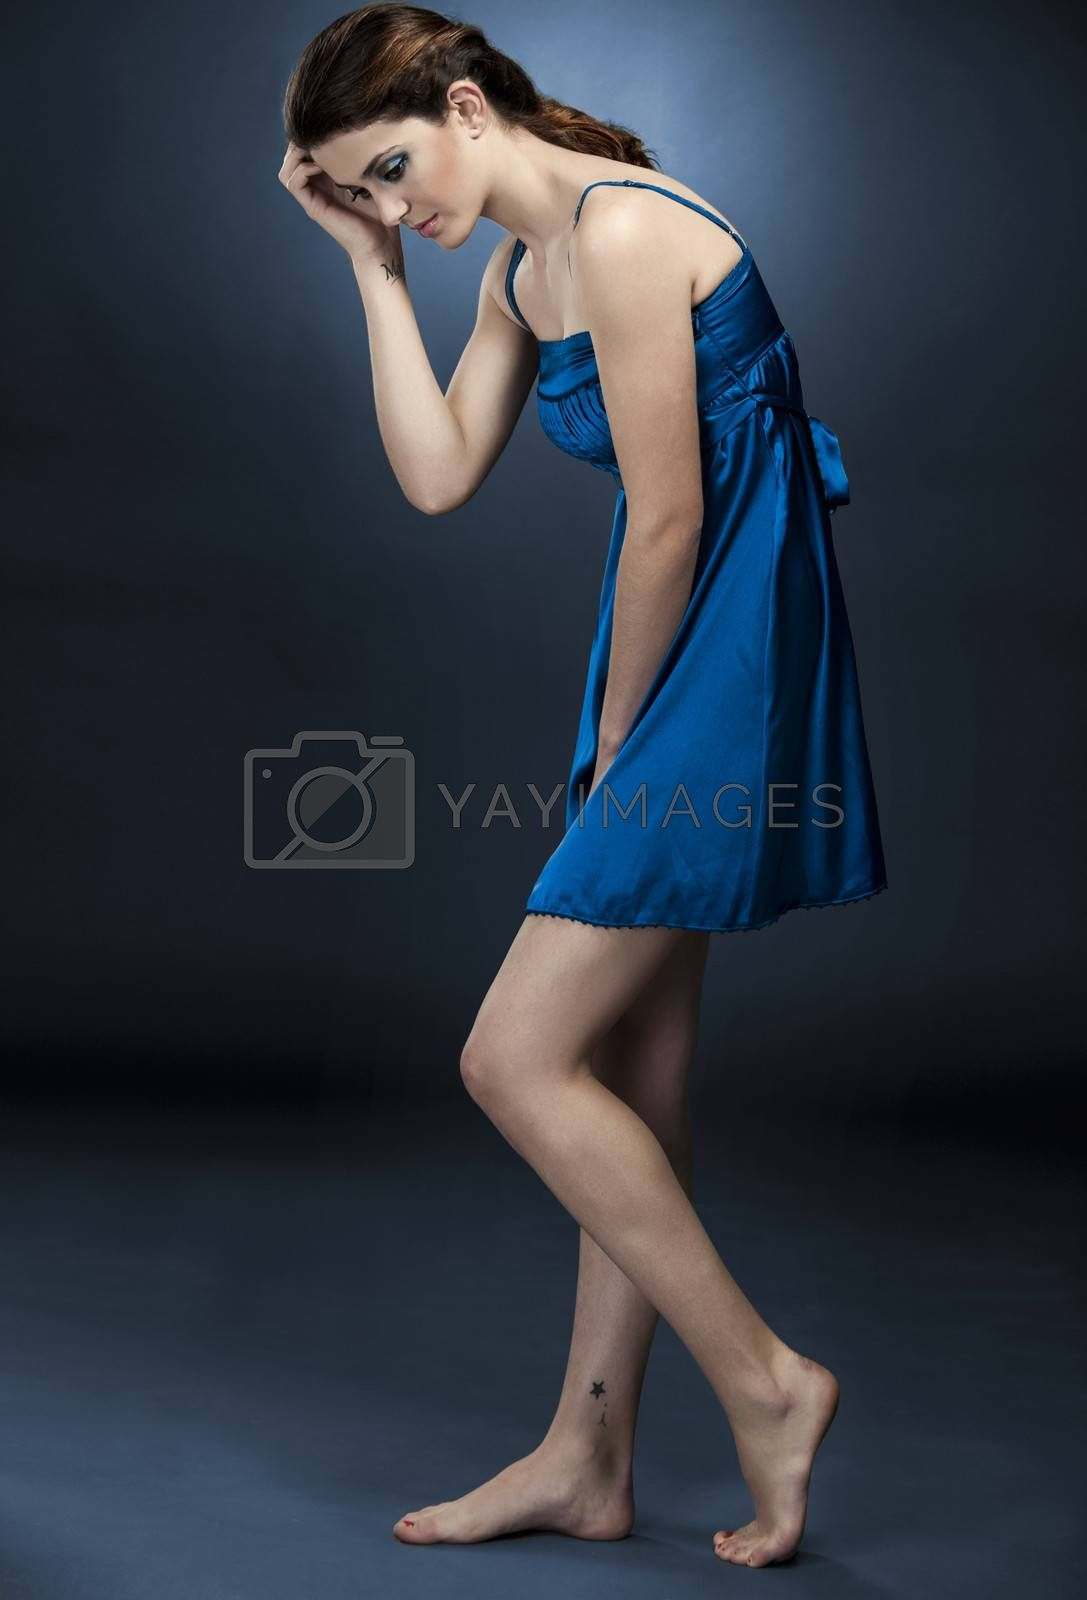 Sexy and beautiful fashion woman posing against a blue background